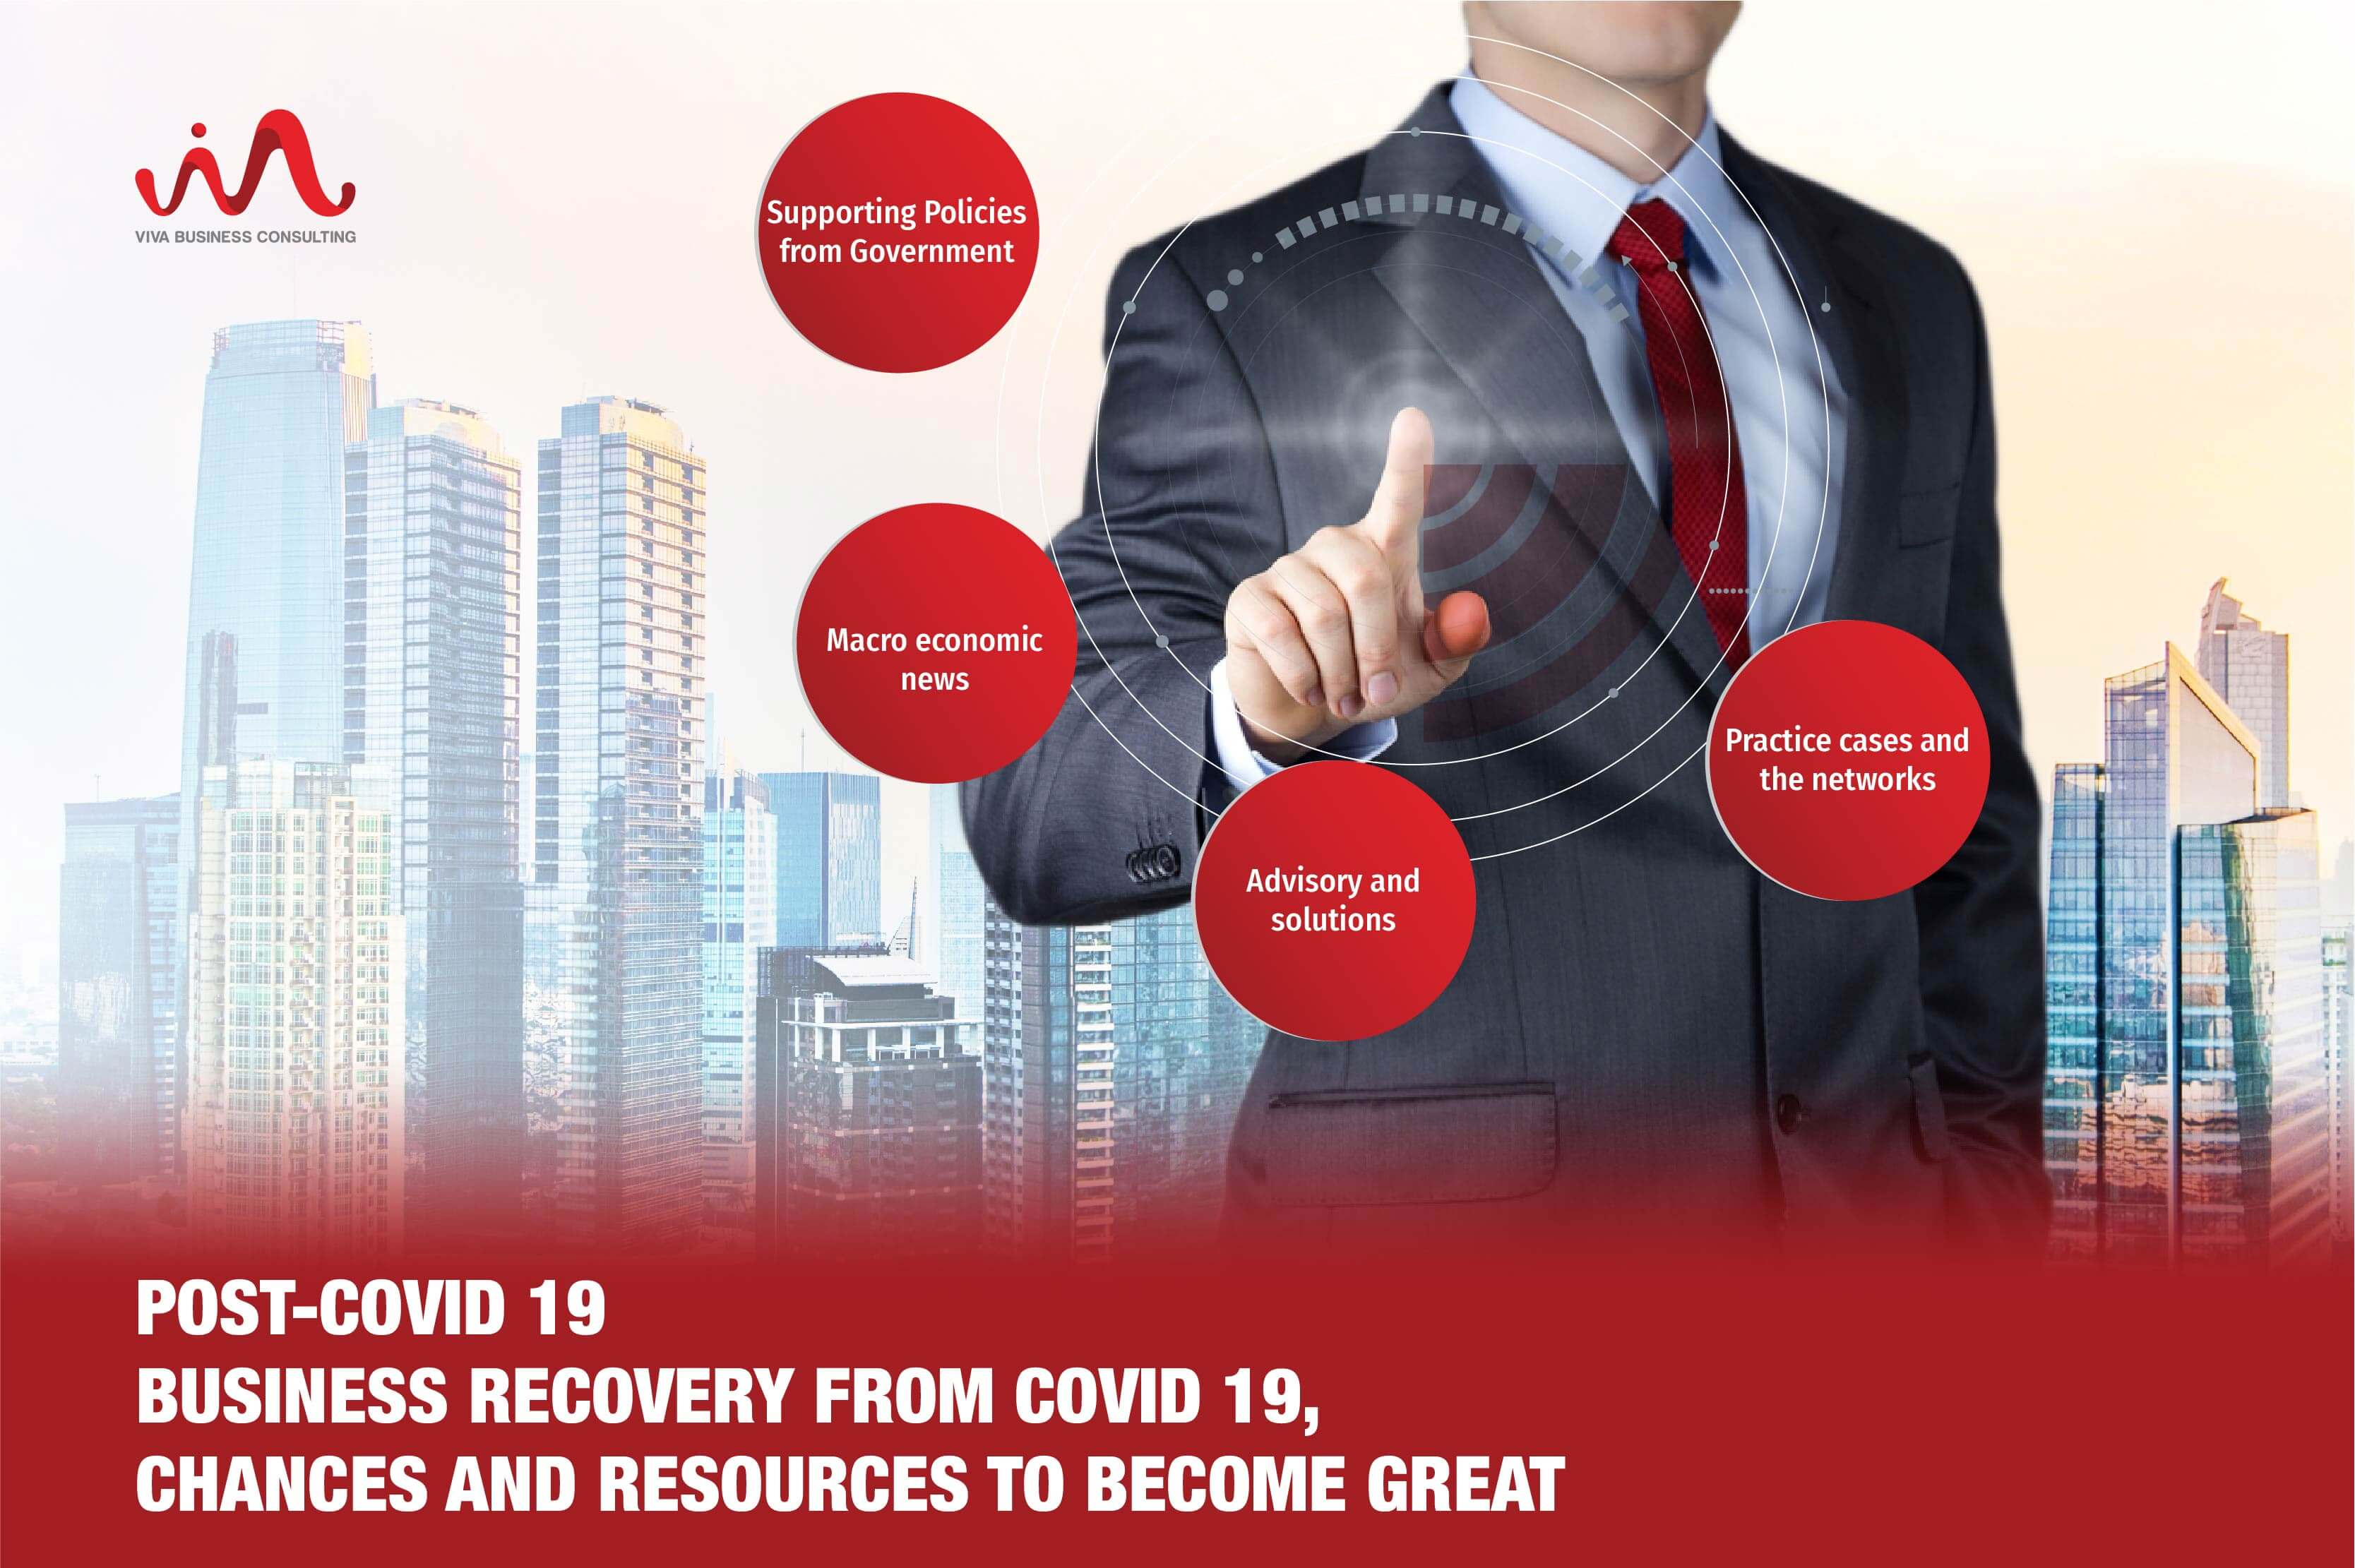 Business Recovery From Covid 19 - Chances And Resources